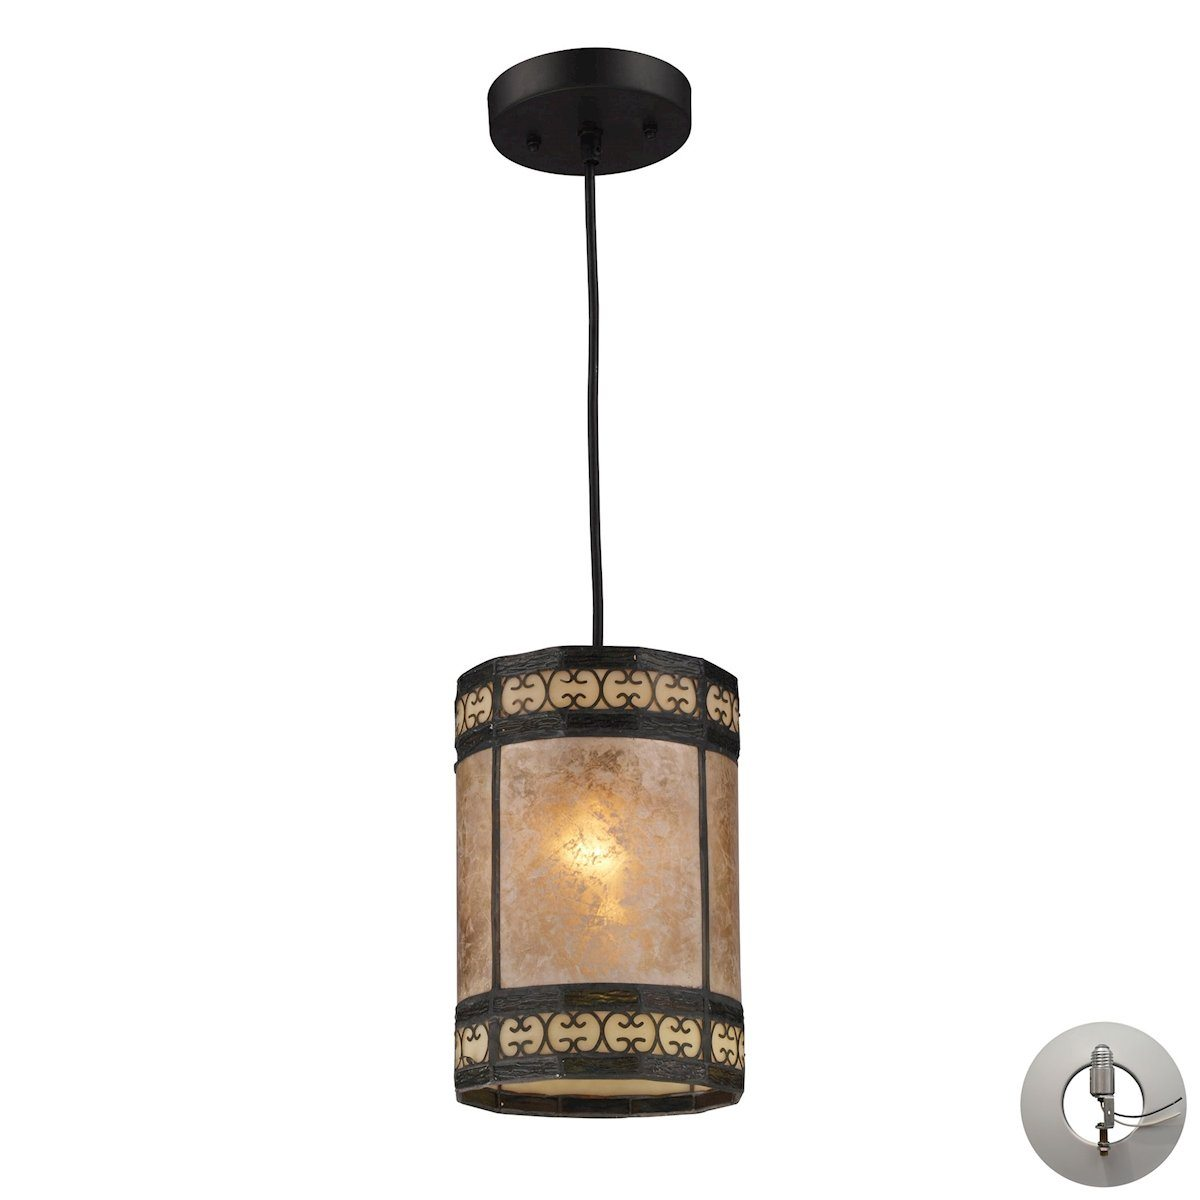 Mica Filigree Pendant In Tiffany Bronze And Tan Mica - Includes Recessed Lighting Kit Ceiling Elk Lighting